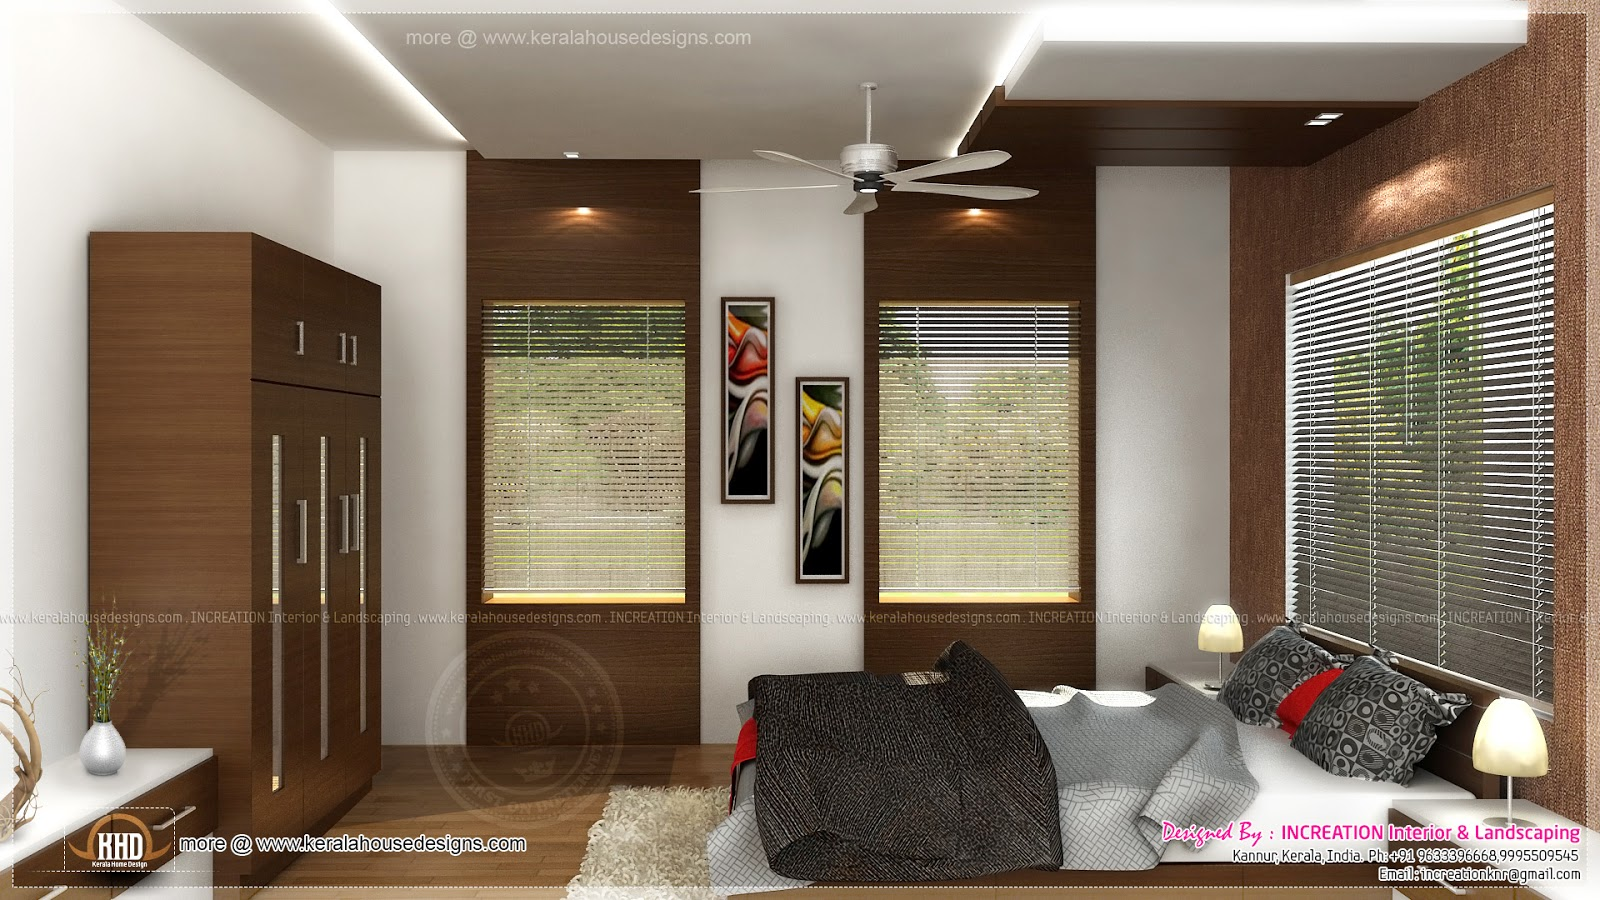 interior designs from kannur kerala kerala home design ForInterior Designs In Kerala